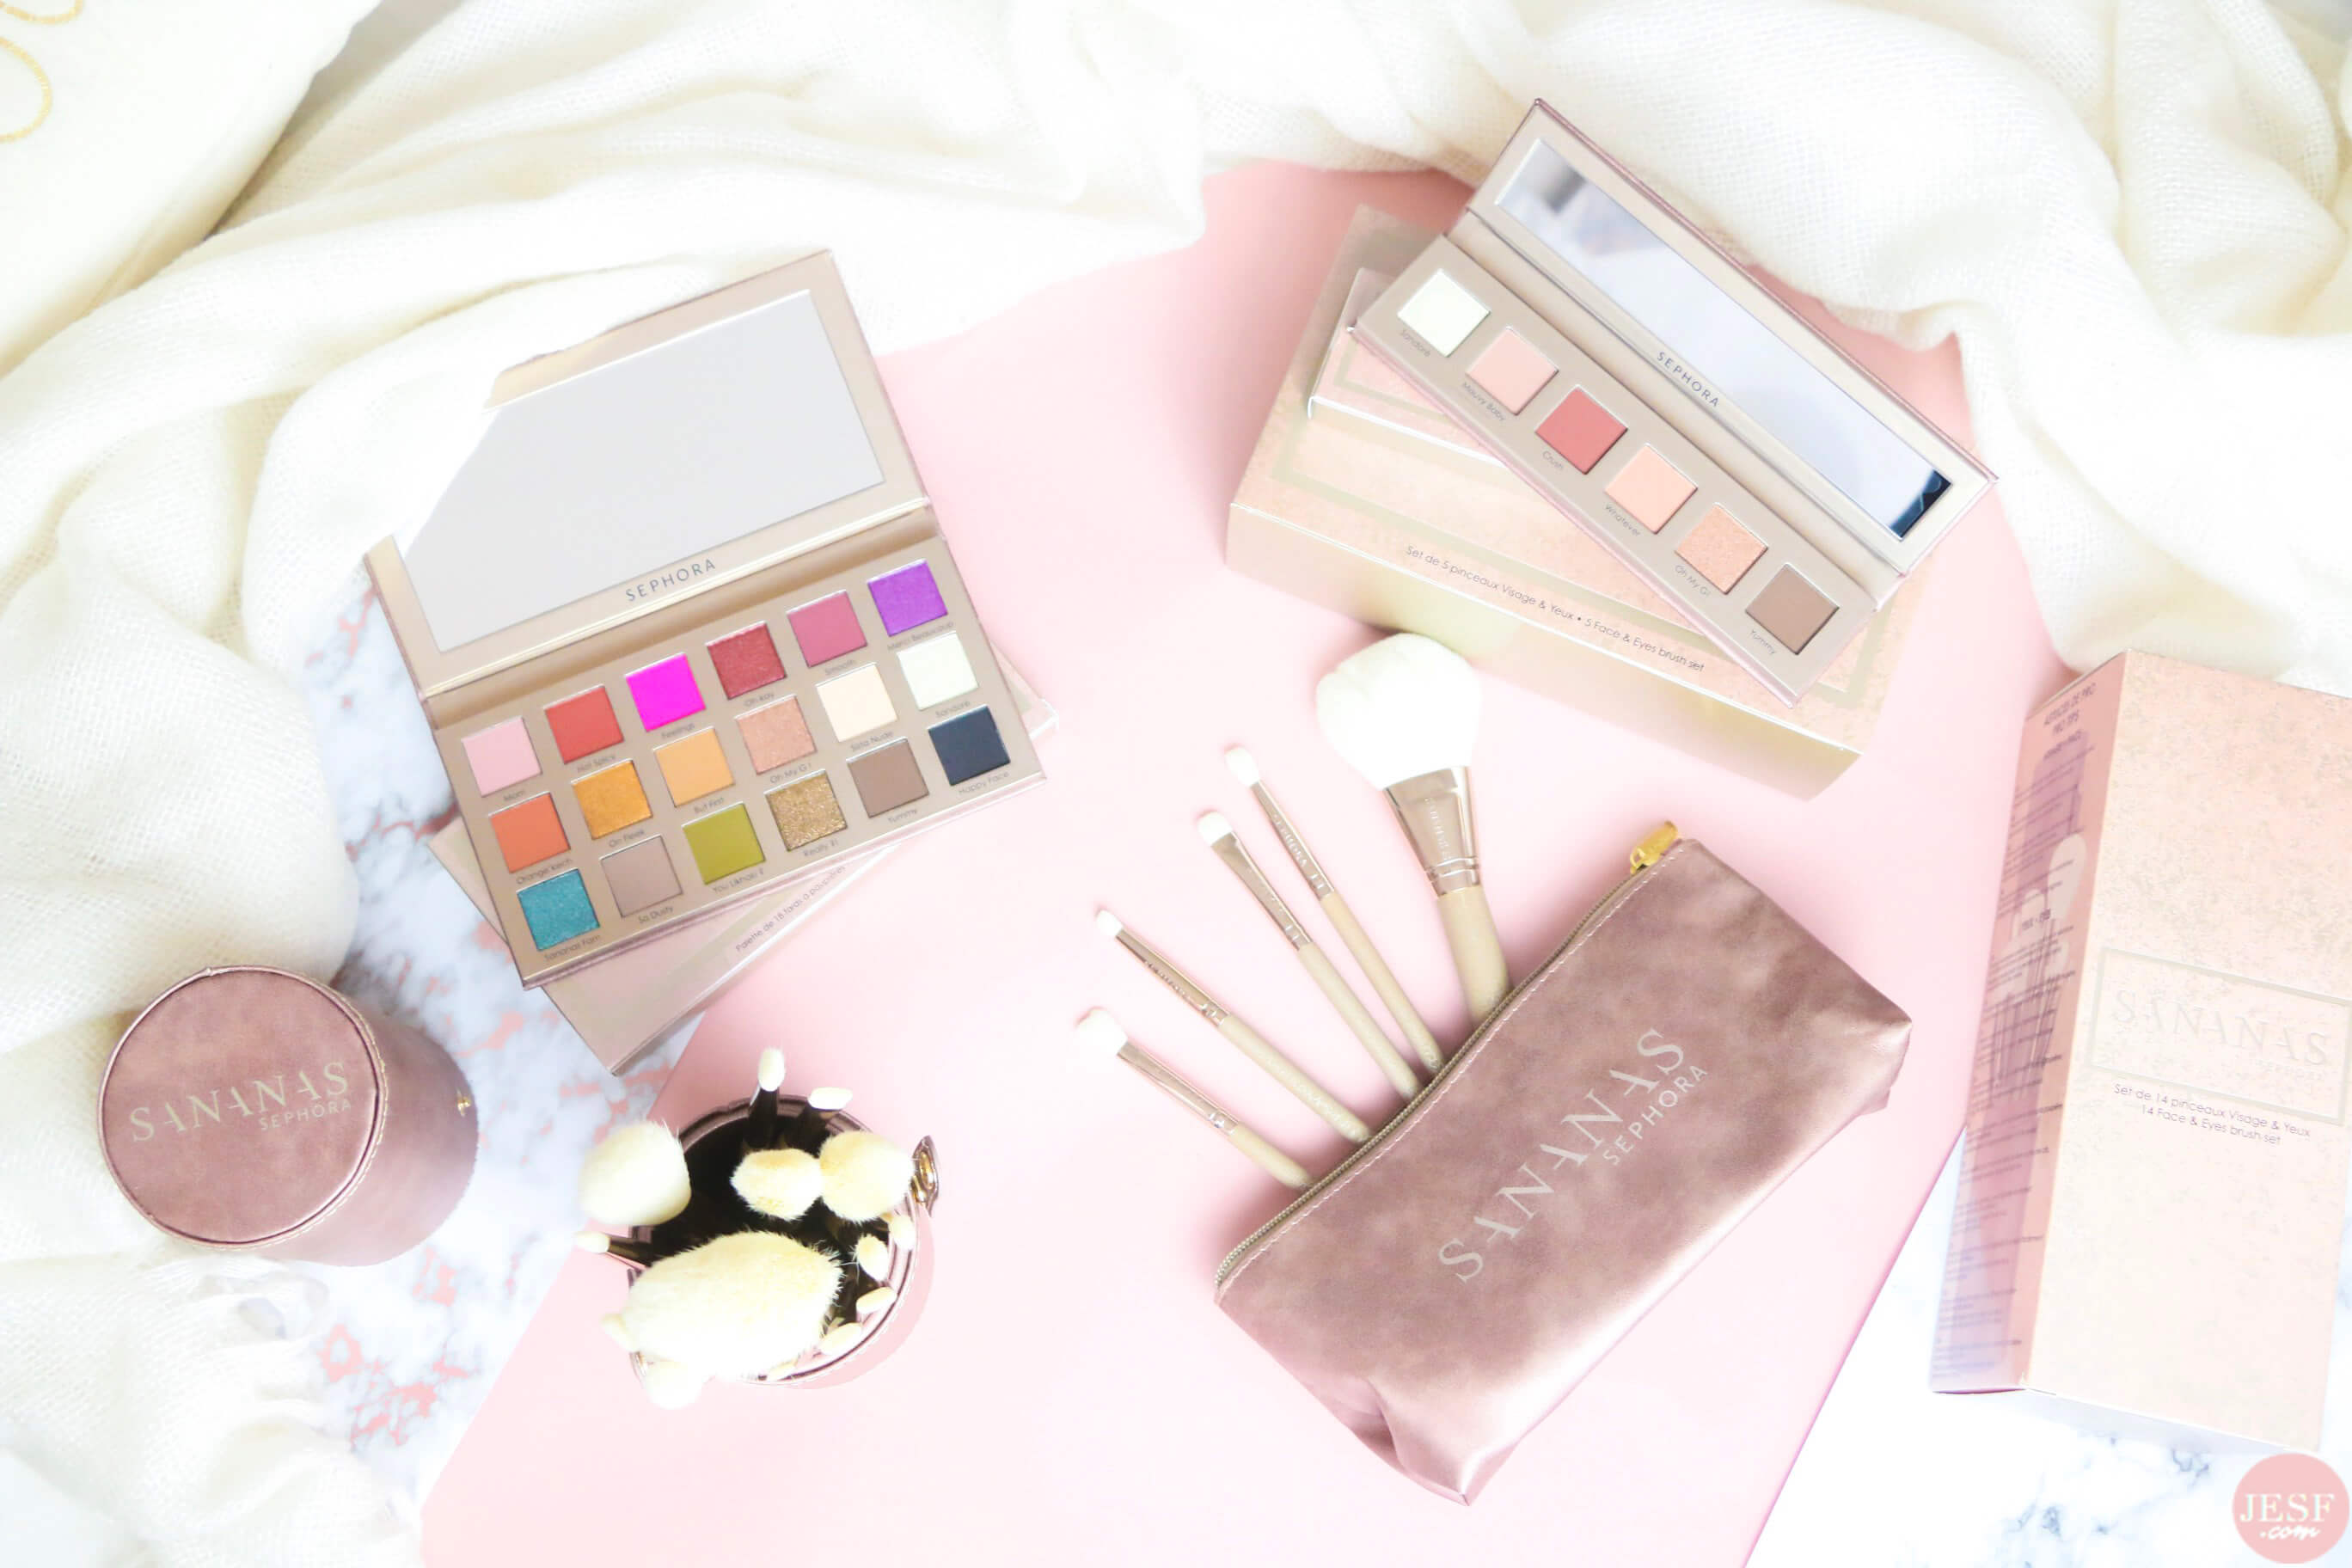 sananas-sephora-collection-makeup-avis-test-swatch-pinceaux-palette